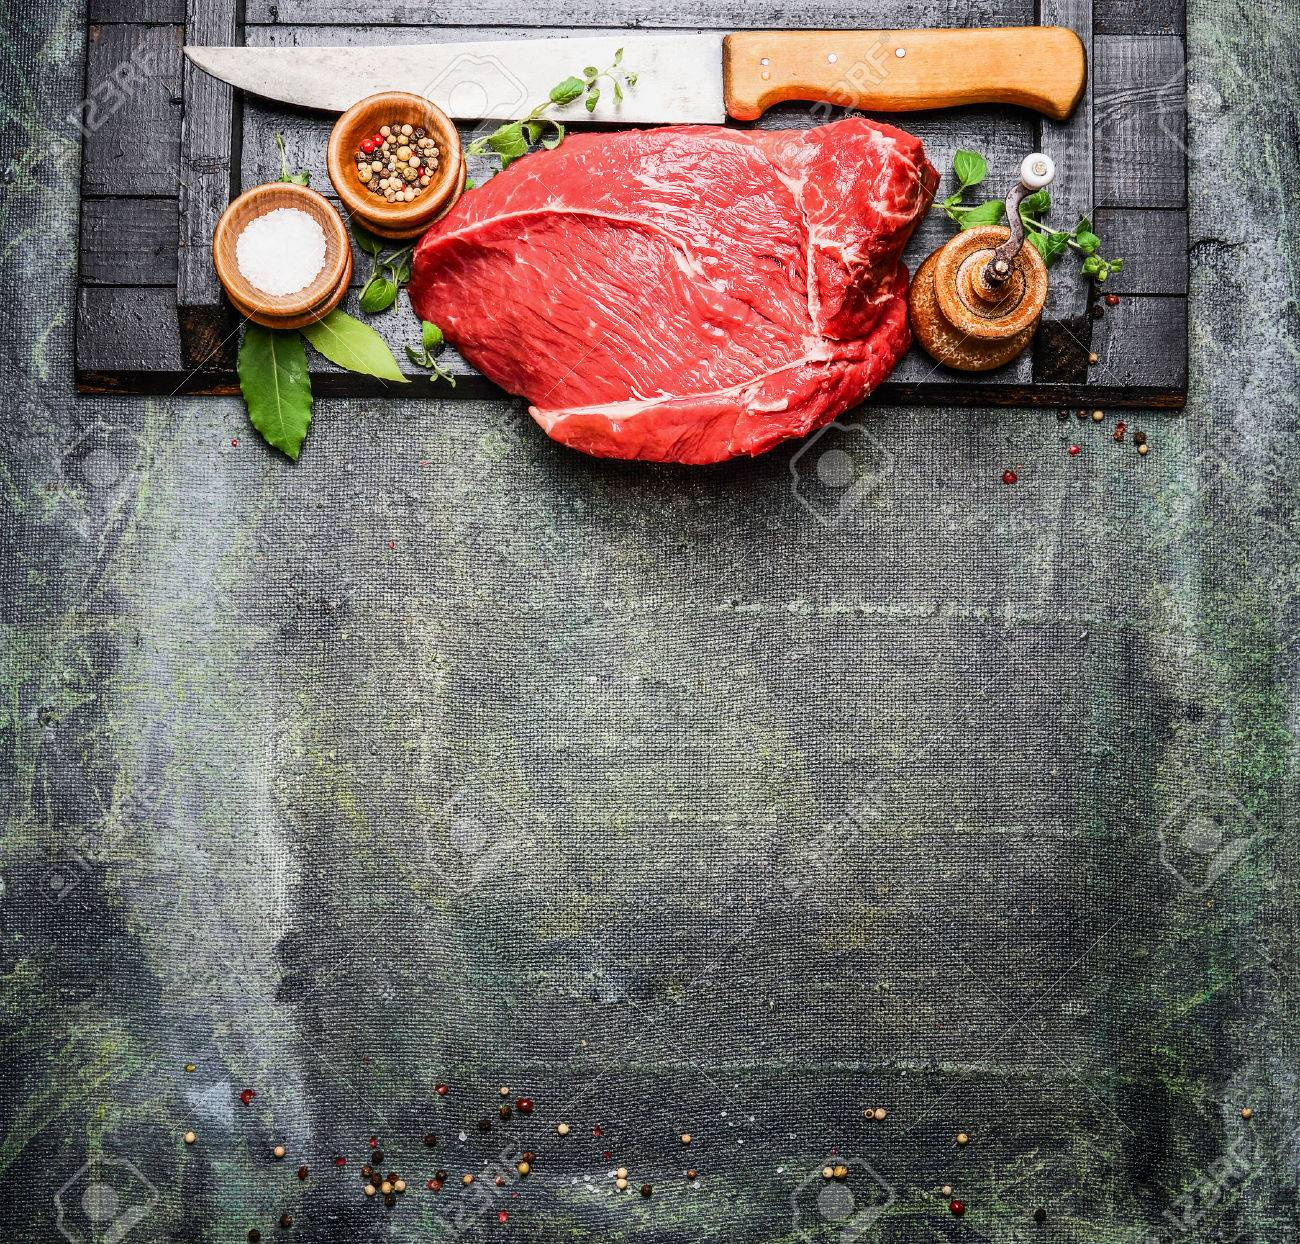 Fresh raw meat with cooking seasoning and butcher knife on rustic background, top view. - 50916258